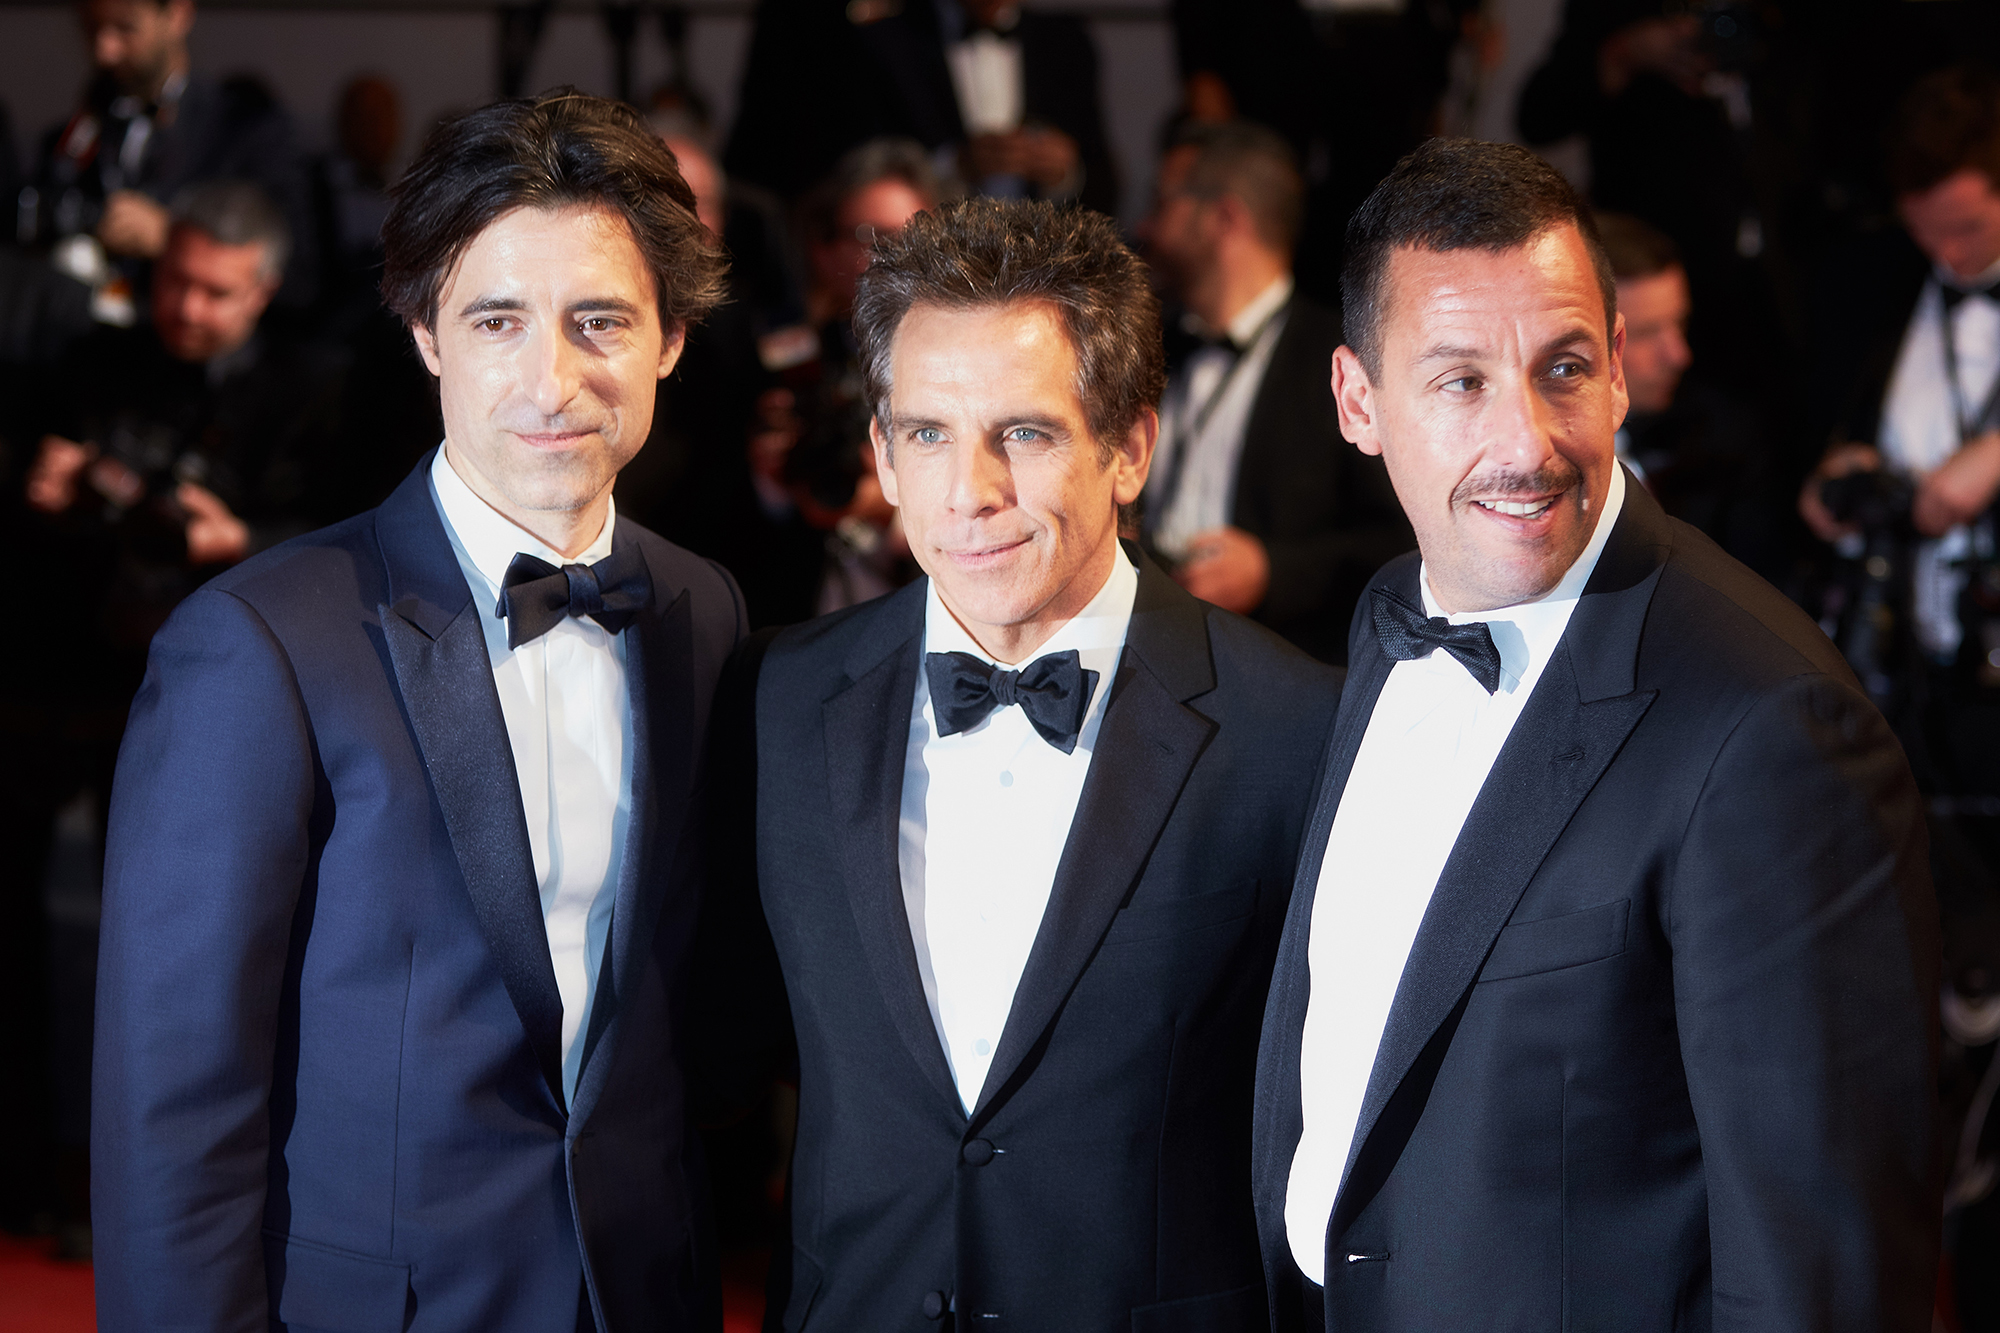 From left: Director Noah Baumbach, Ben Stiller and Adam Sandler, on May 21, 2017 in Cannes, France.